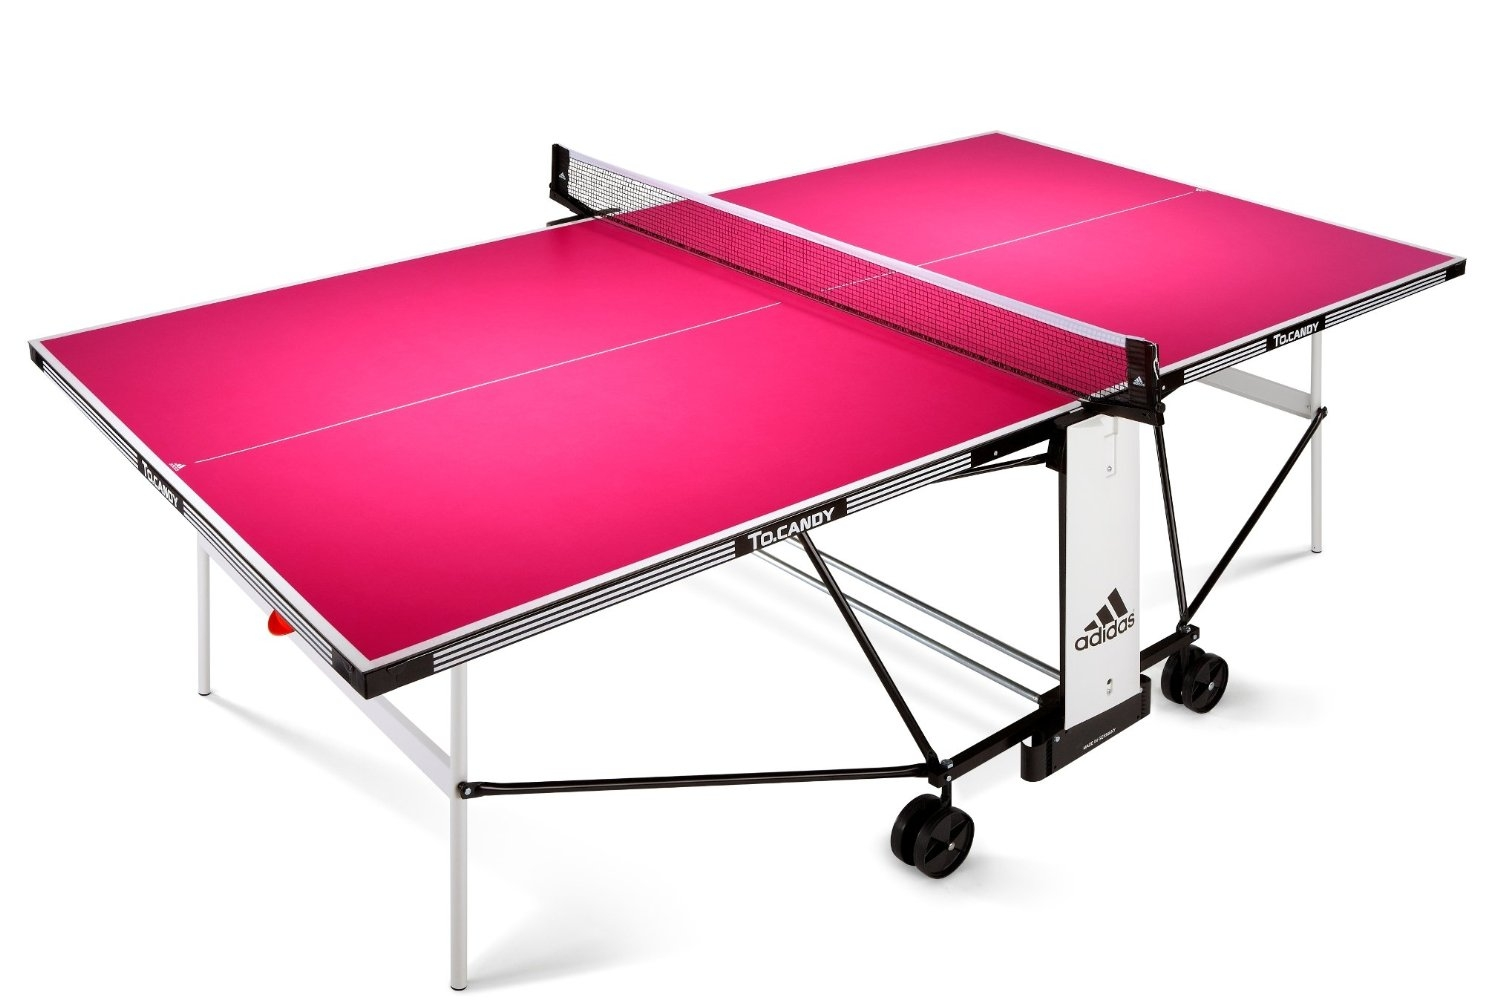 Table de ping pong d 39 ext rieur adidas to candy - Table de ping pong exterieur pour collectivite ...